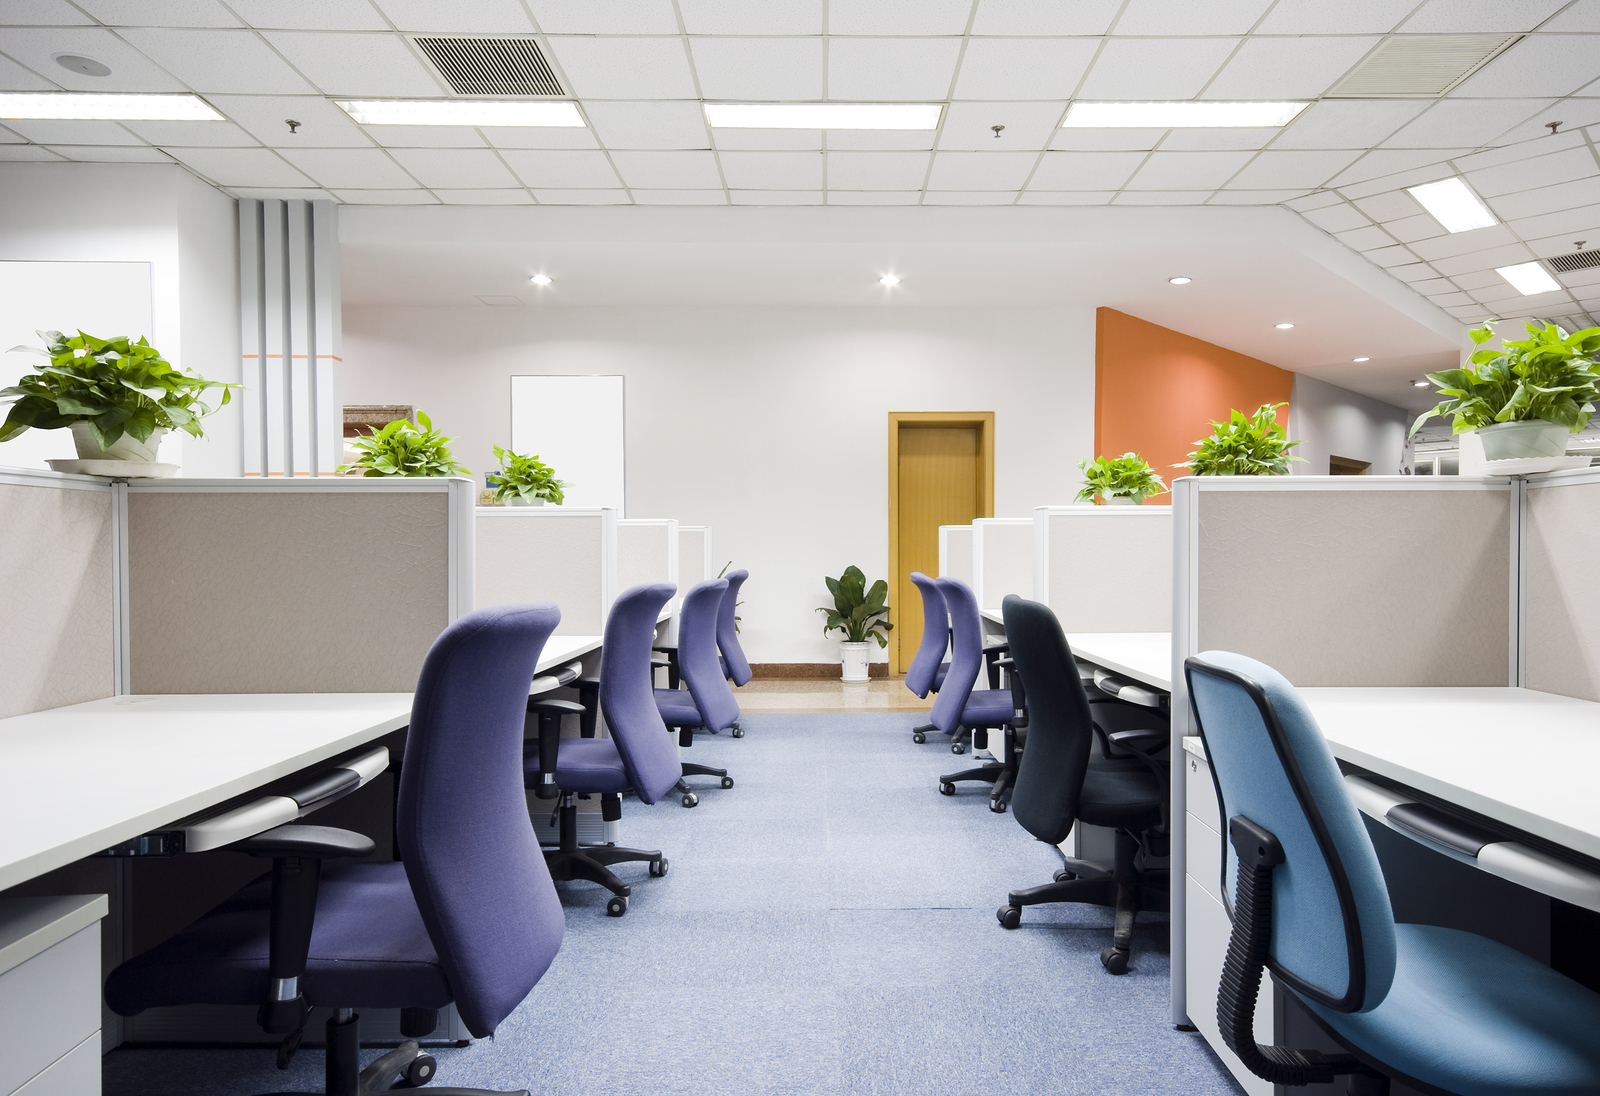 Offices - | We appreciate the value of a clean work environment. From the restrooms, to the carpets, to each individual wastebasket, we'll do our part to make each workday a little brighter.